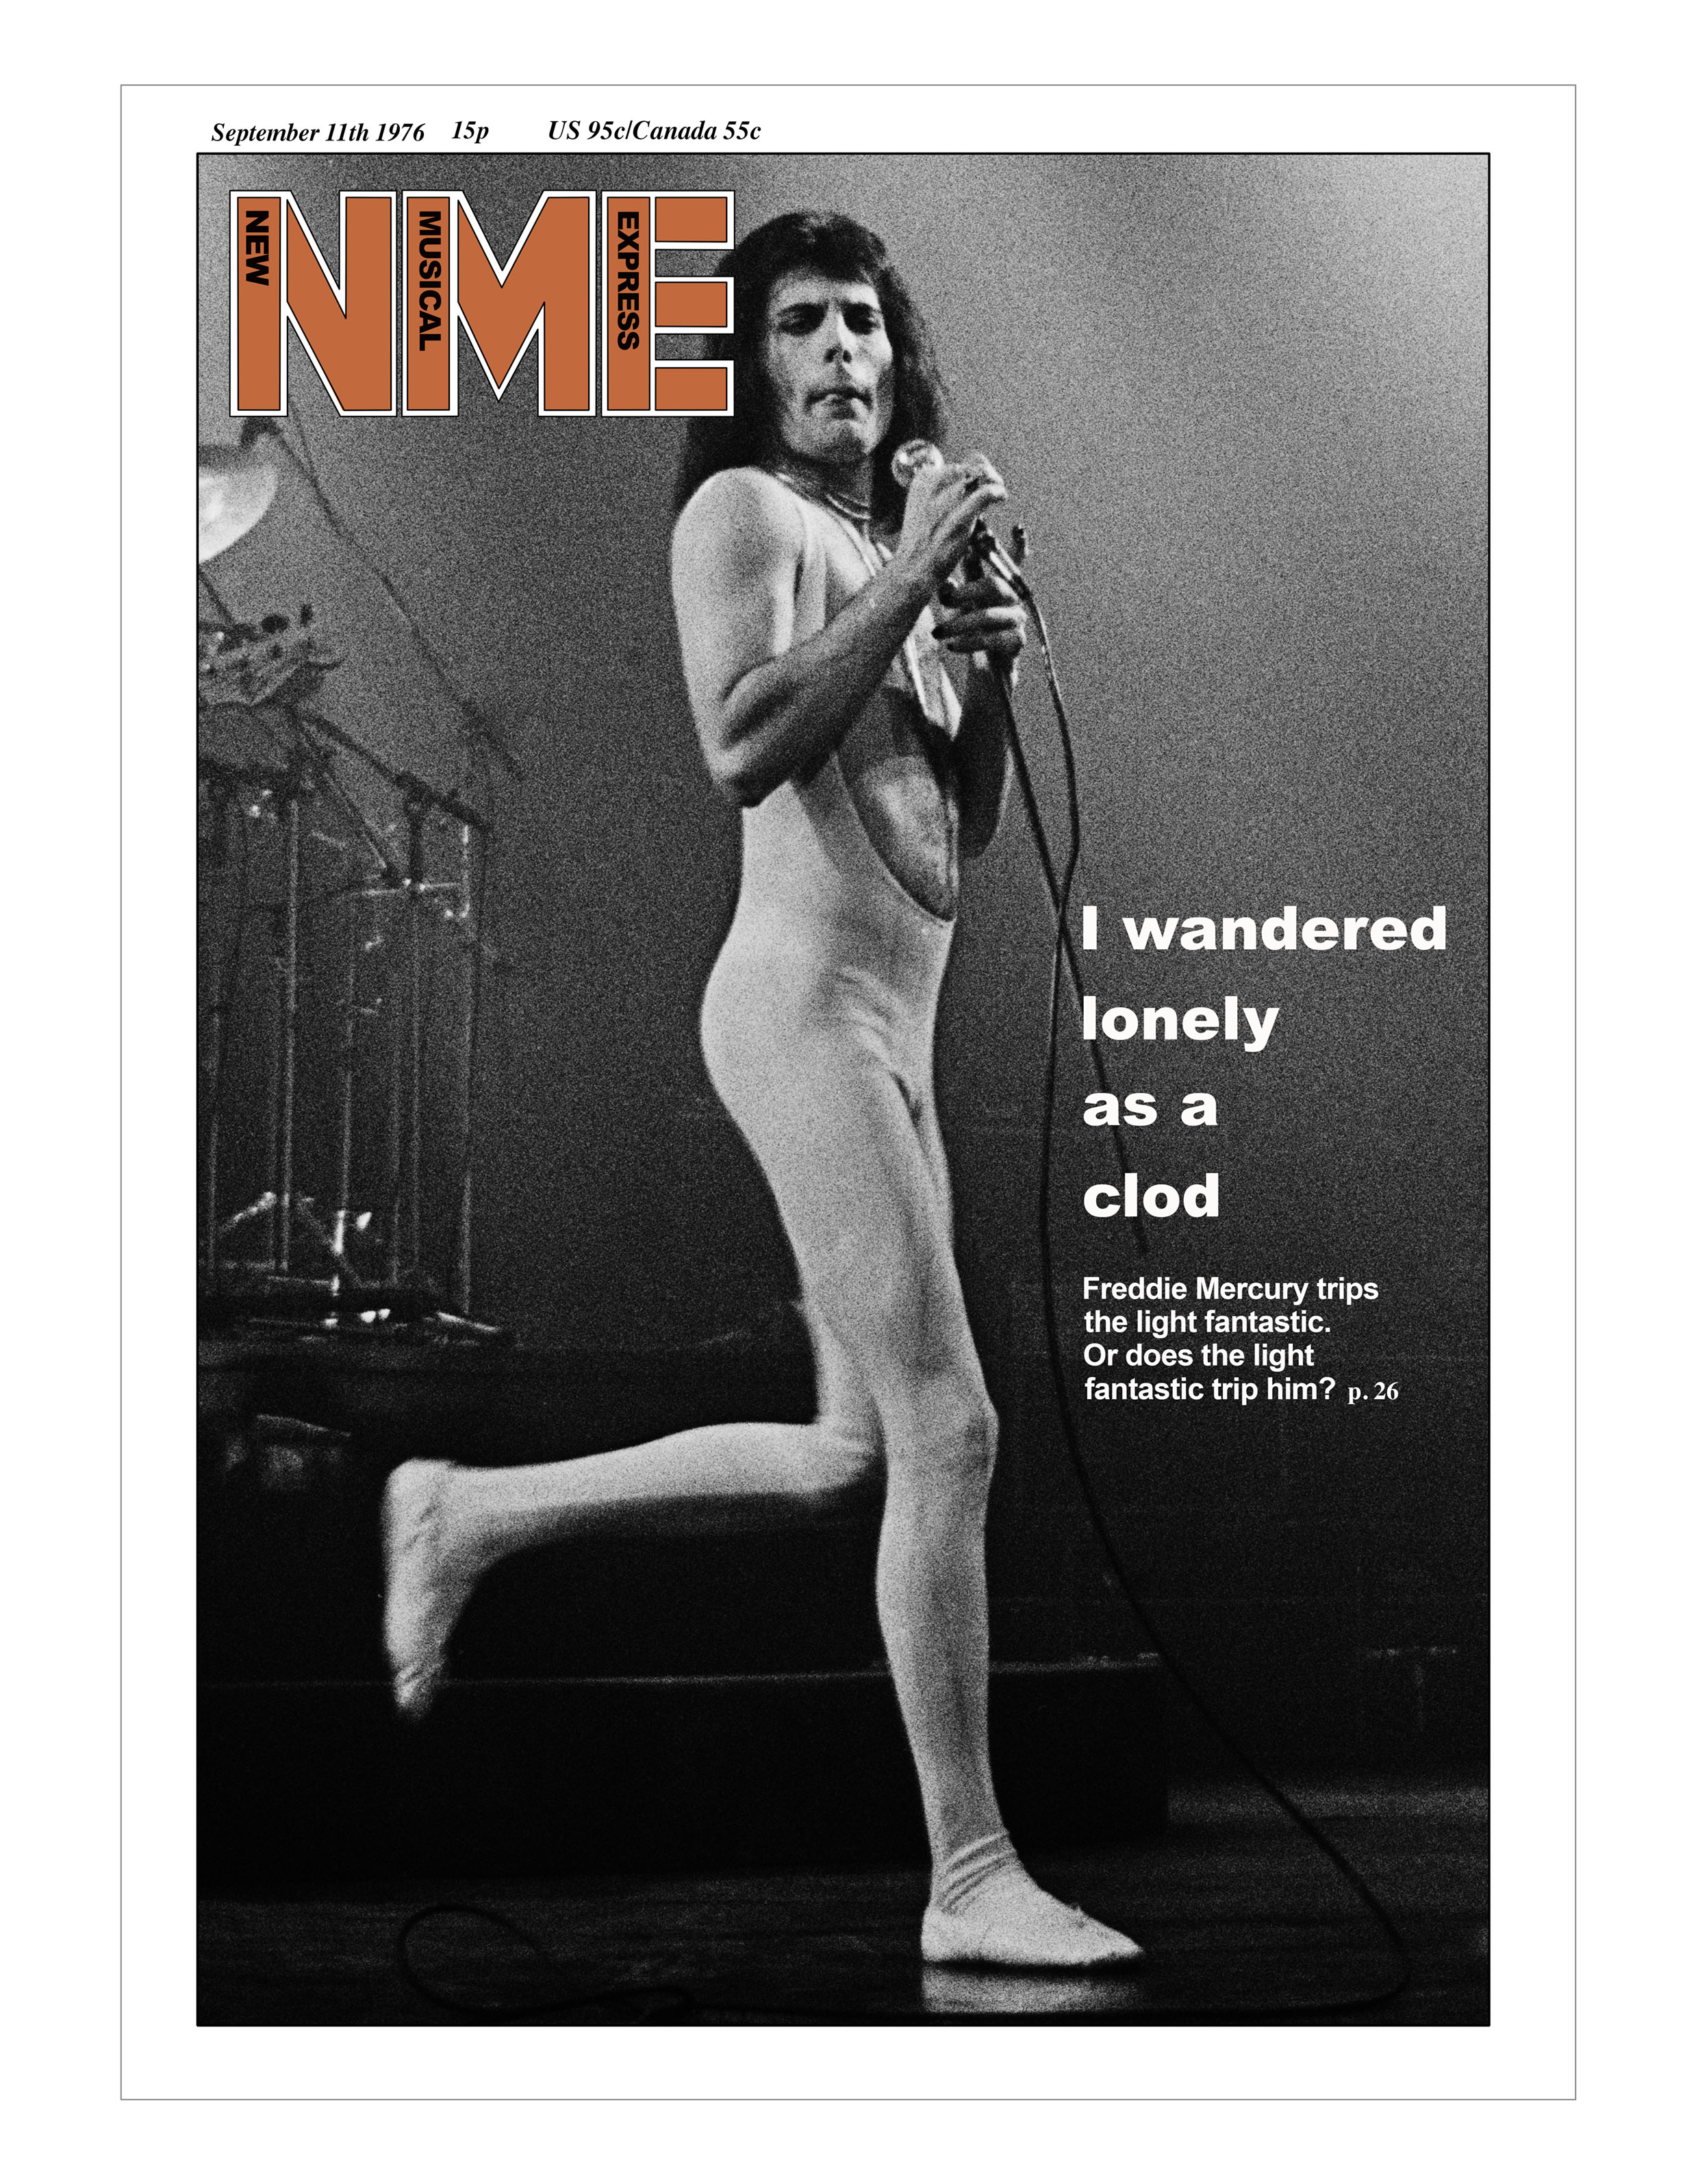 Queen NME cover catalog.jpg